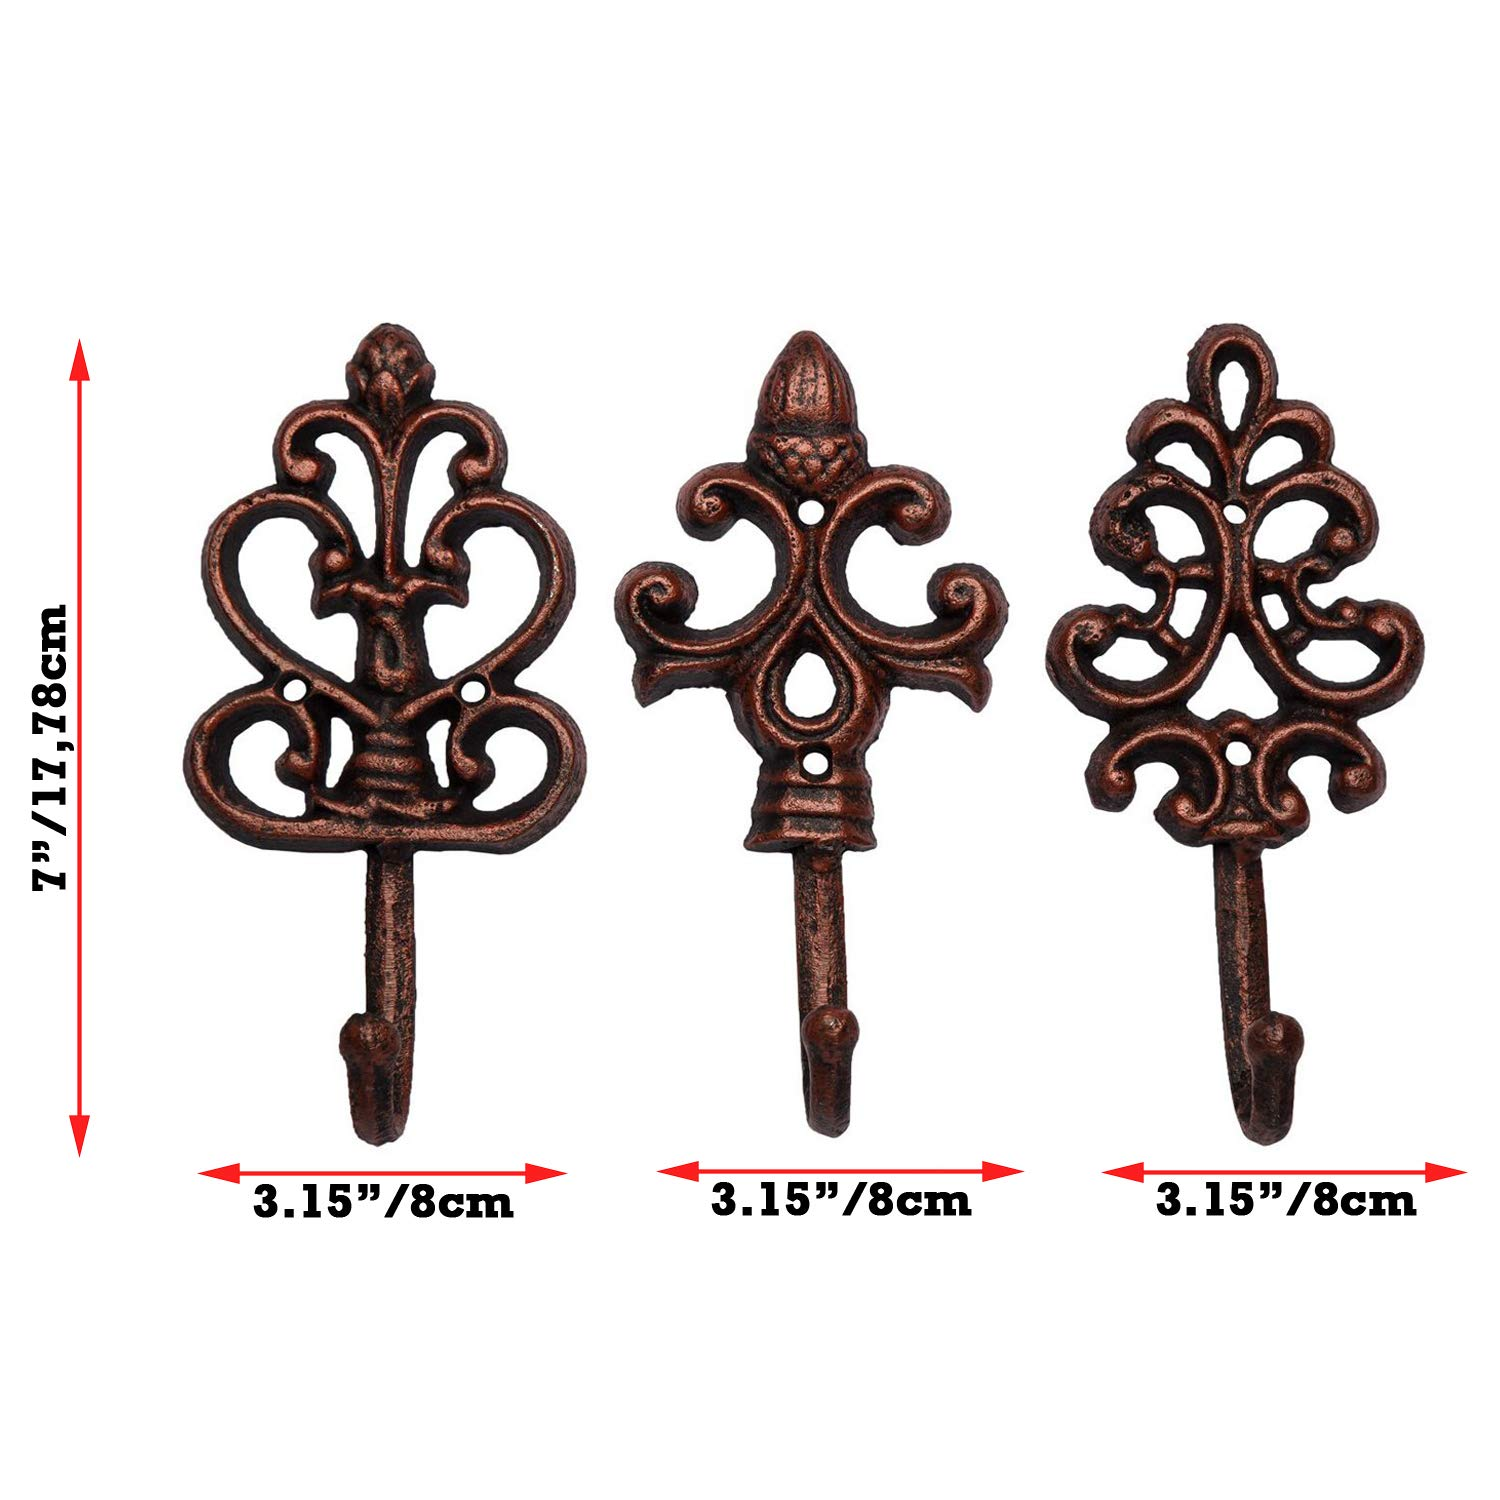 Set of 3 Large Decorative Hanging Hooks Antique Cooper Screws and Anchors for Mounting Included- Brown French Country Charm Rustic Shabby Chic Cast Iron Decorative Wall Hooks